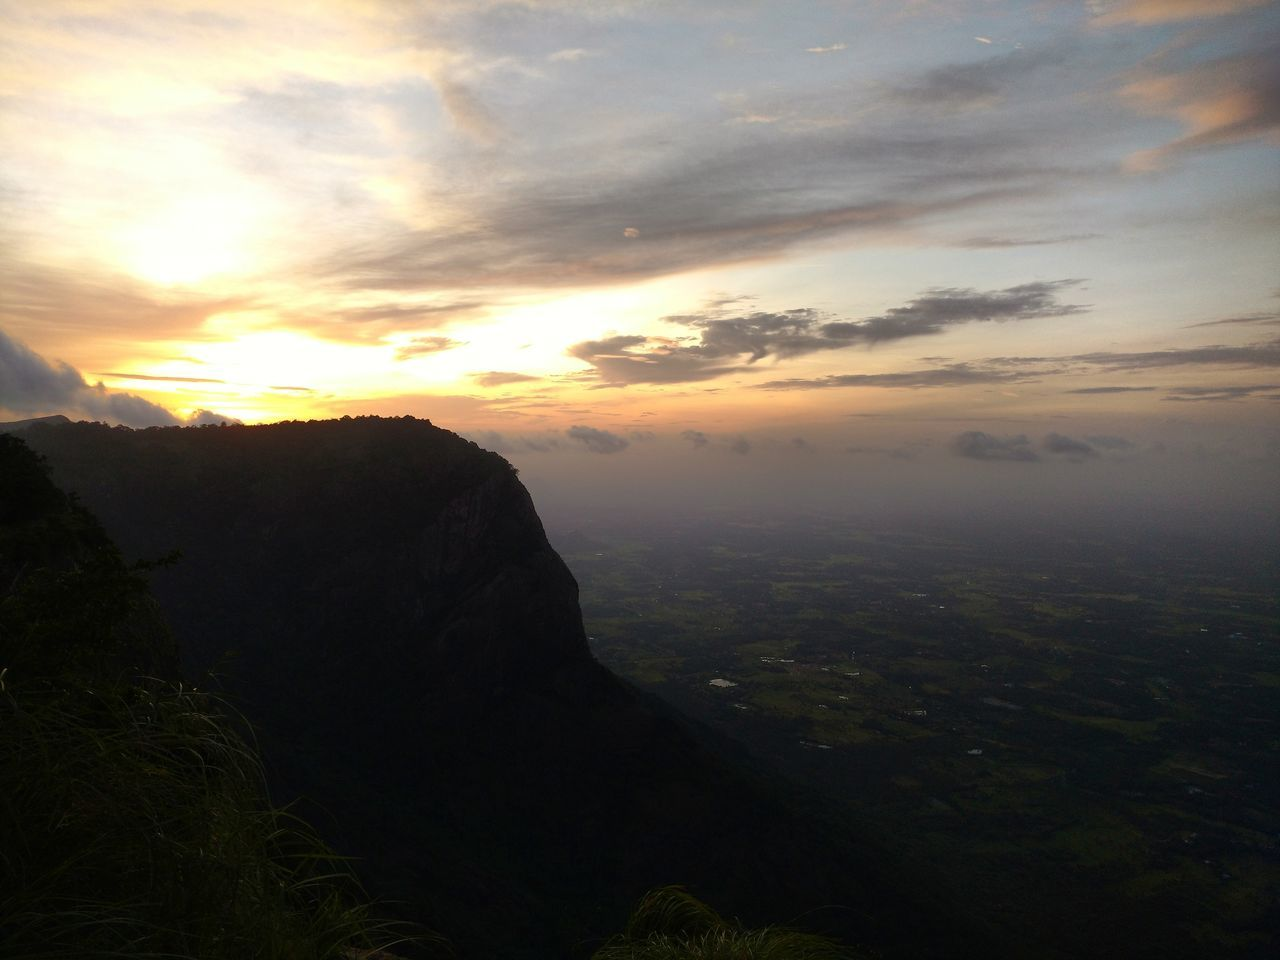 Nelliyampathy GodsOwnCountry Scenics Sunset Landscape Tranquility Cloud - Sky Seetharkundu Kerala_tourism Sunset Landscape Mountain Nature Majestic Cloud - Sky Outdoors Scenic First Eyeem Photo Travelphotography Travel